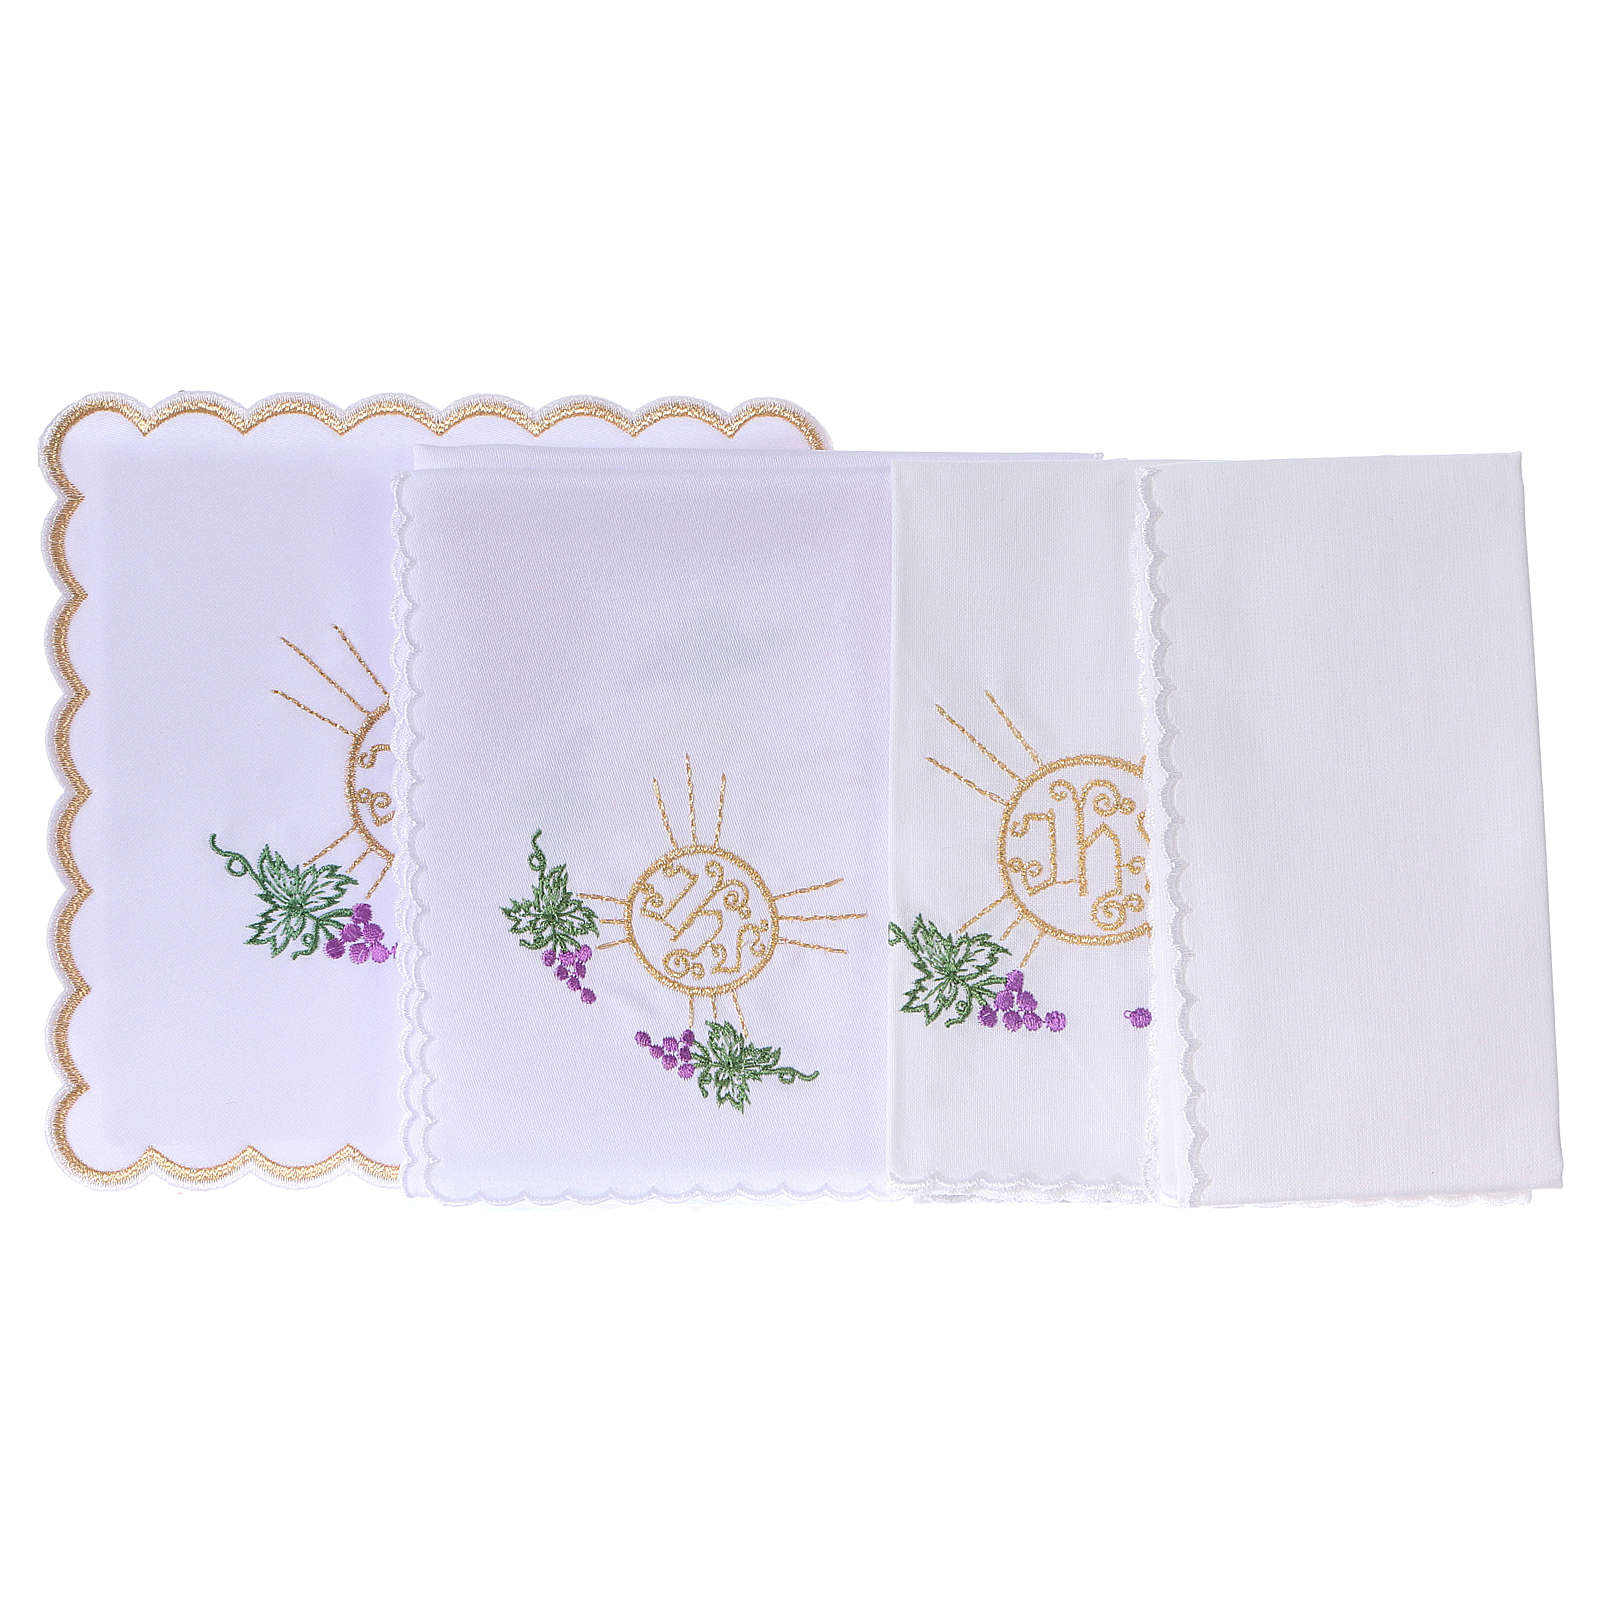 Altar linen bunch of grapes leaves host and JHS, cotton 4